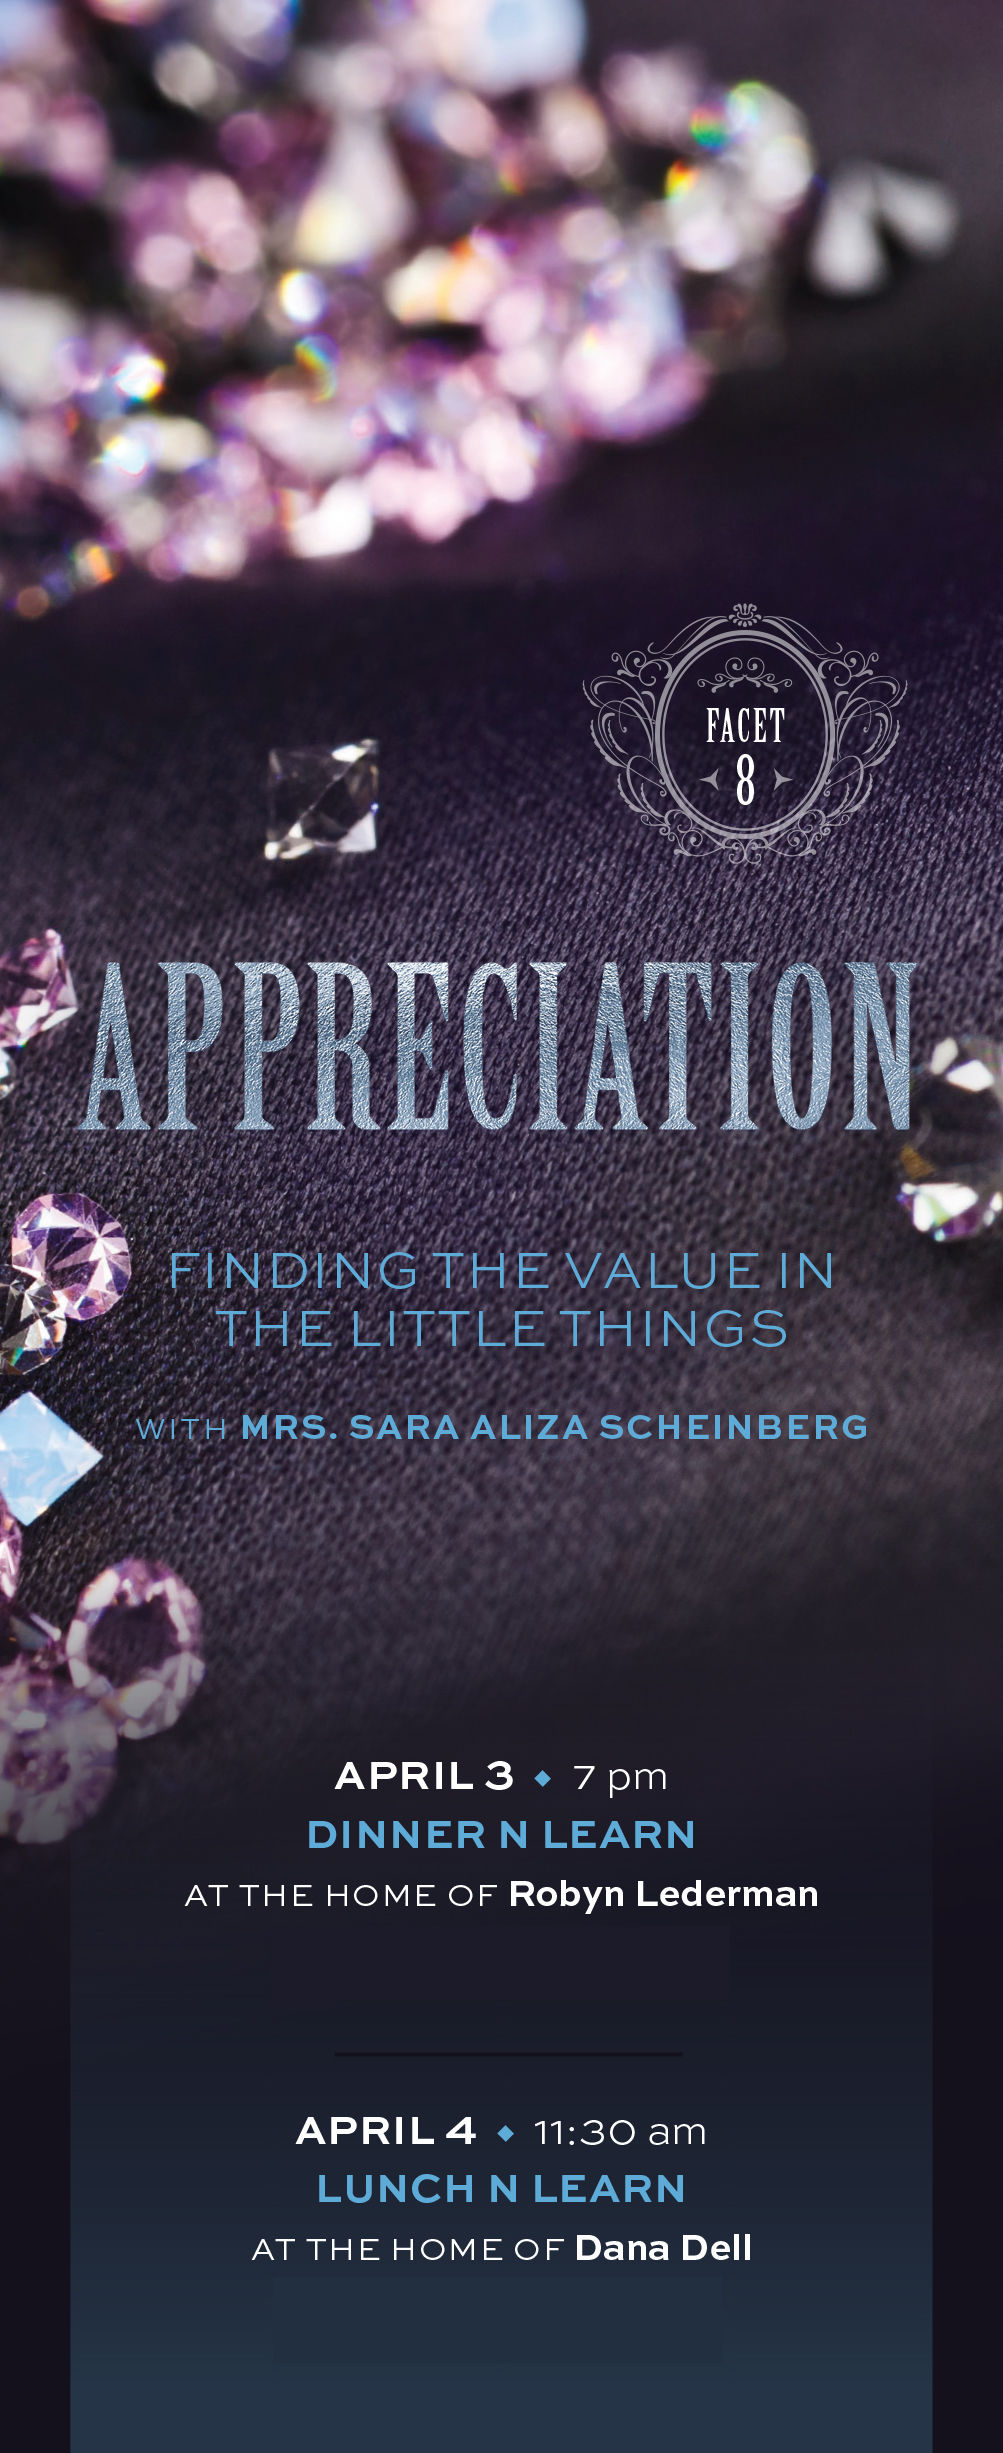 Facets - Appreciation: Finding the Value in the Little Things Dinner 'n Learn